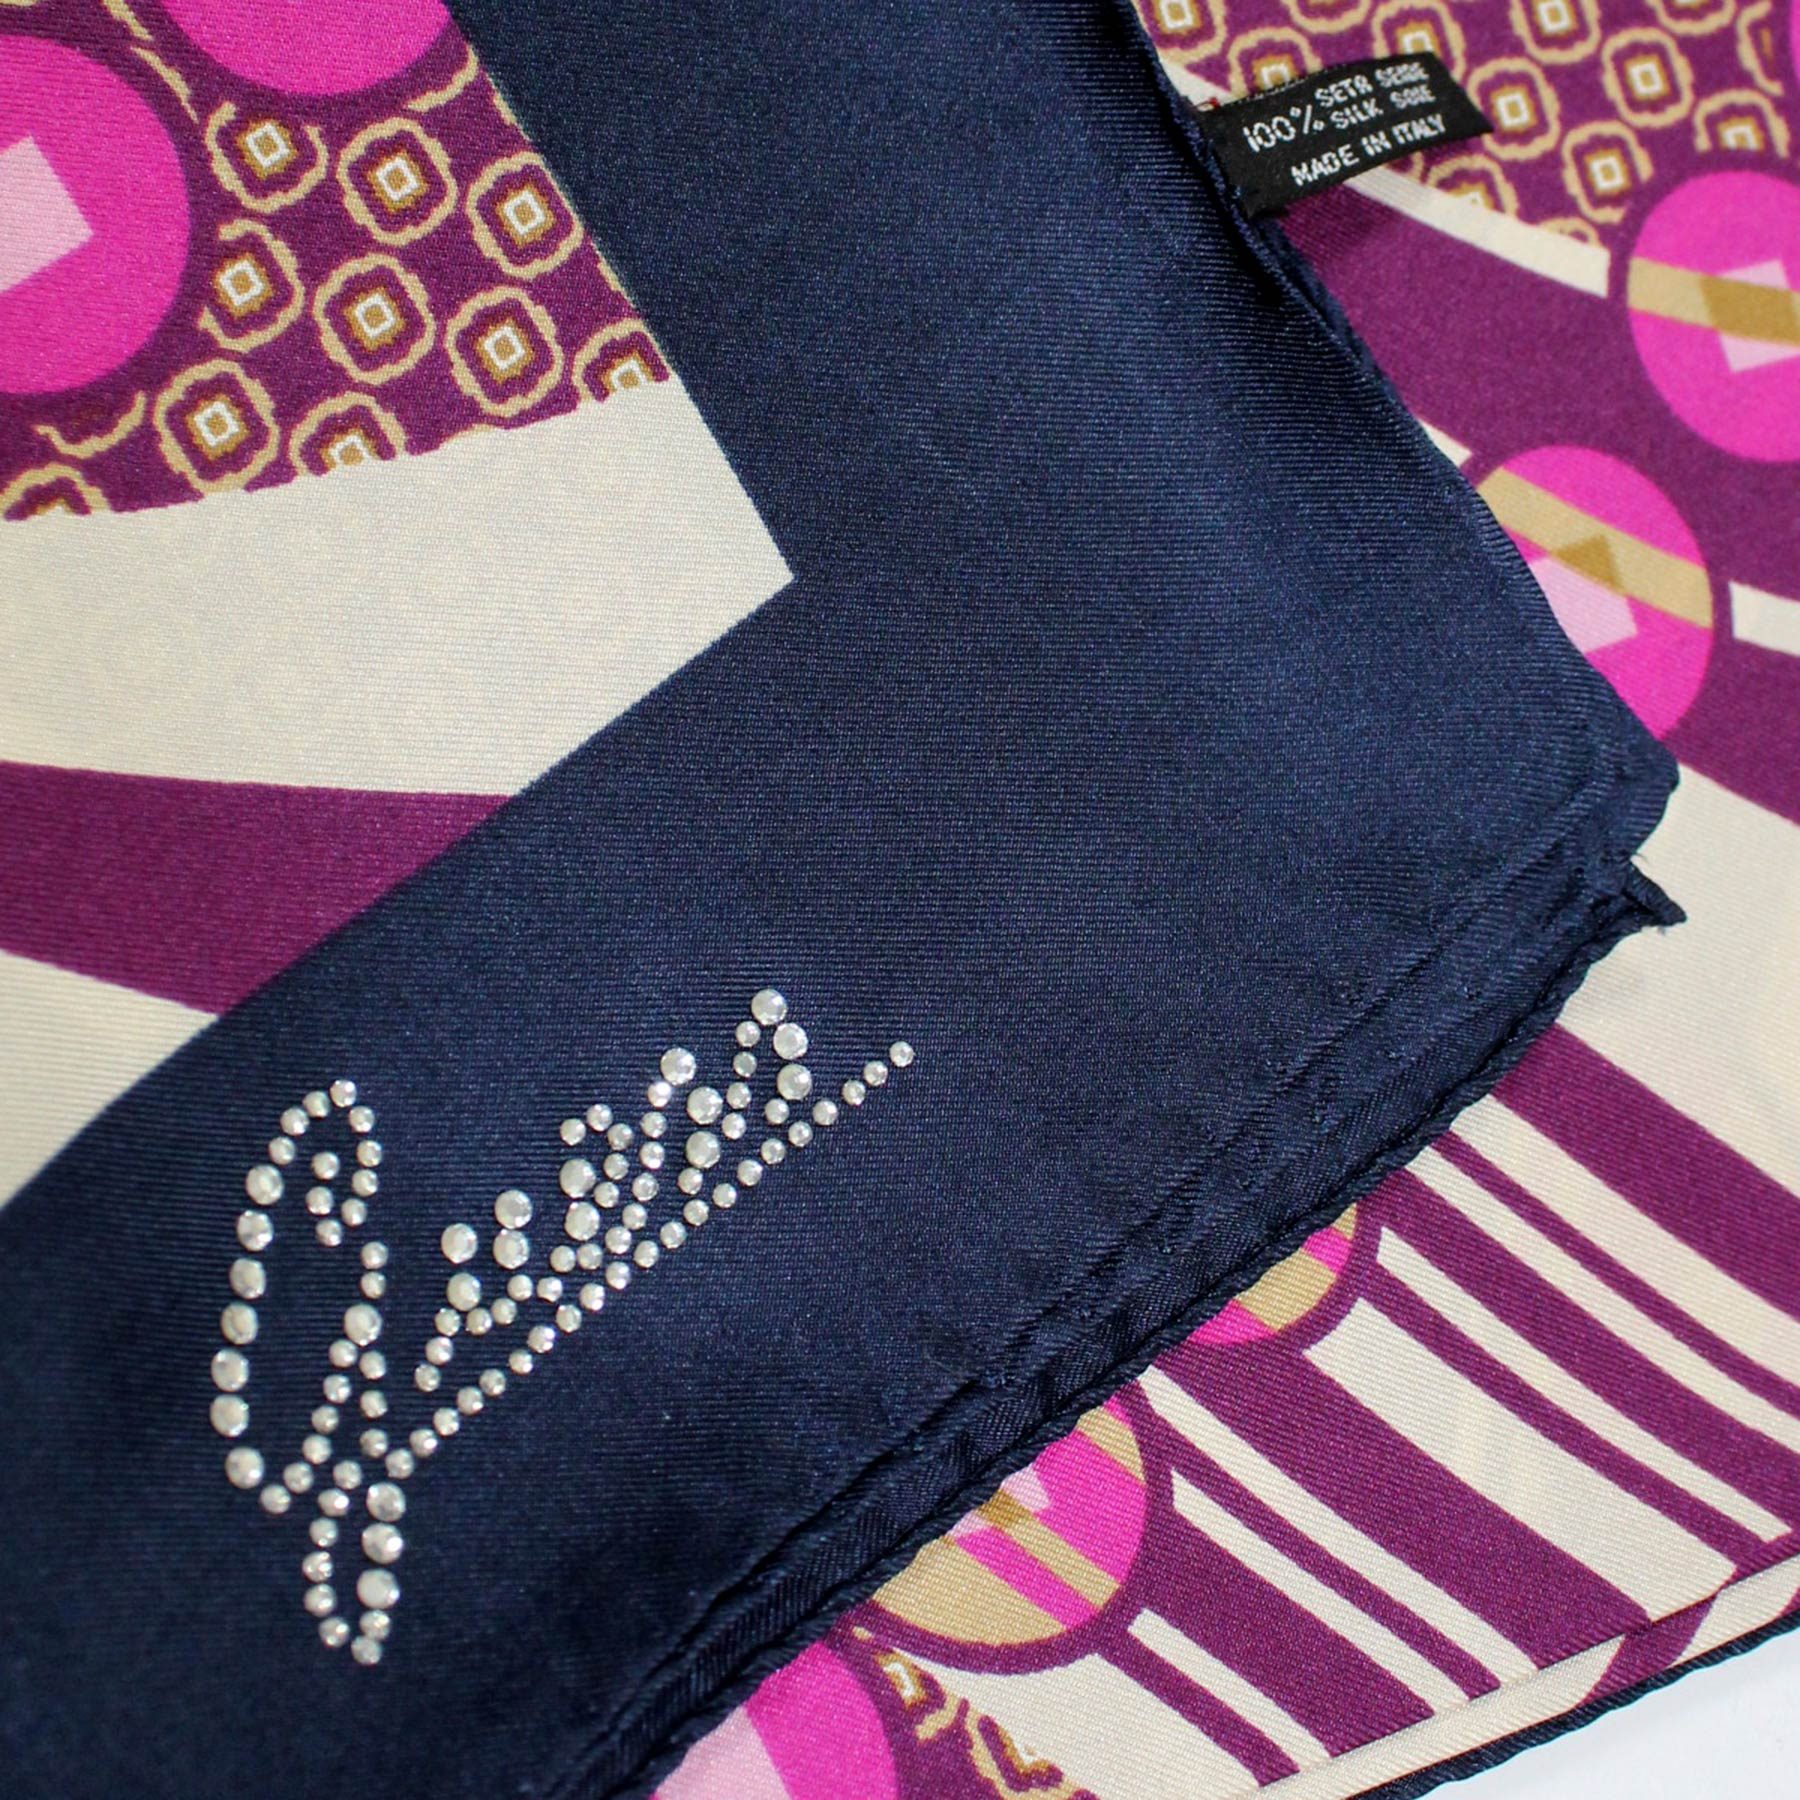 Guess Scarf Navy Purple Geometric Design - Large Square Silk Foulard FINAL SALE